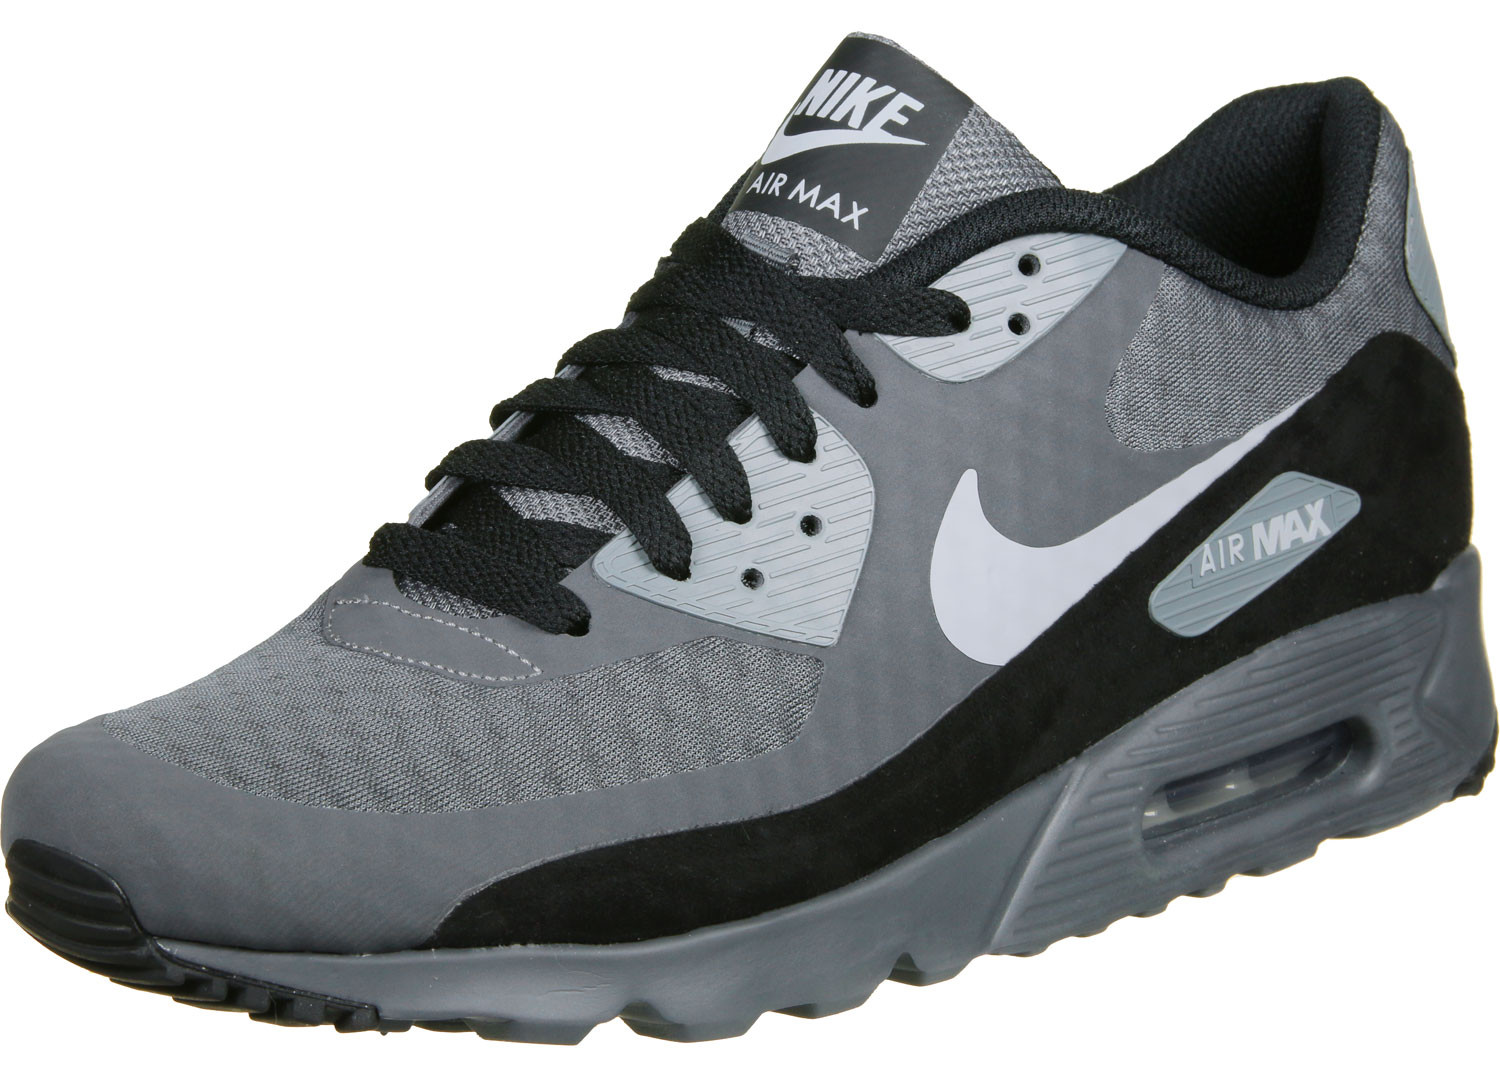 Air Max 90 Essential Lujo Nike Air Max 90 Ultra Essential Shoes Grey Black Of 36  Adorable Air Max 90 Essential